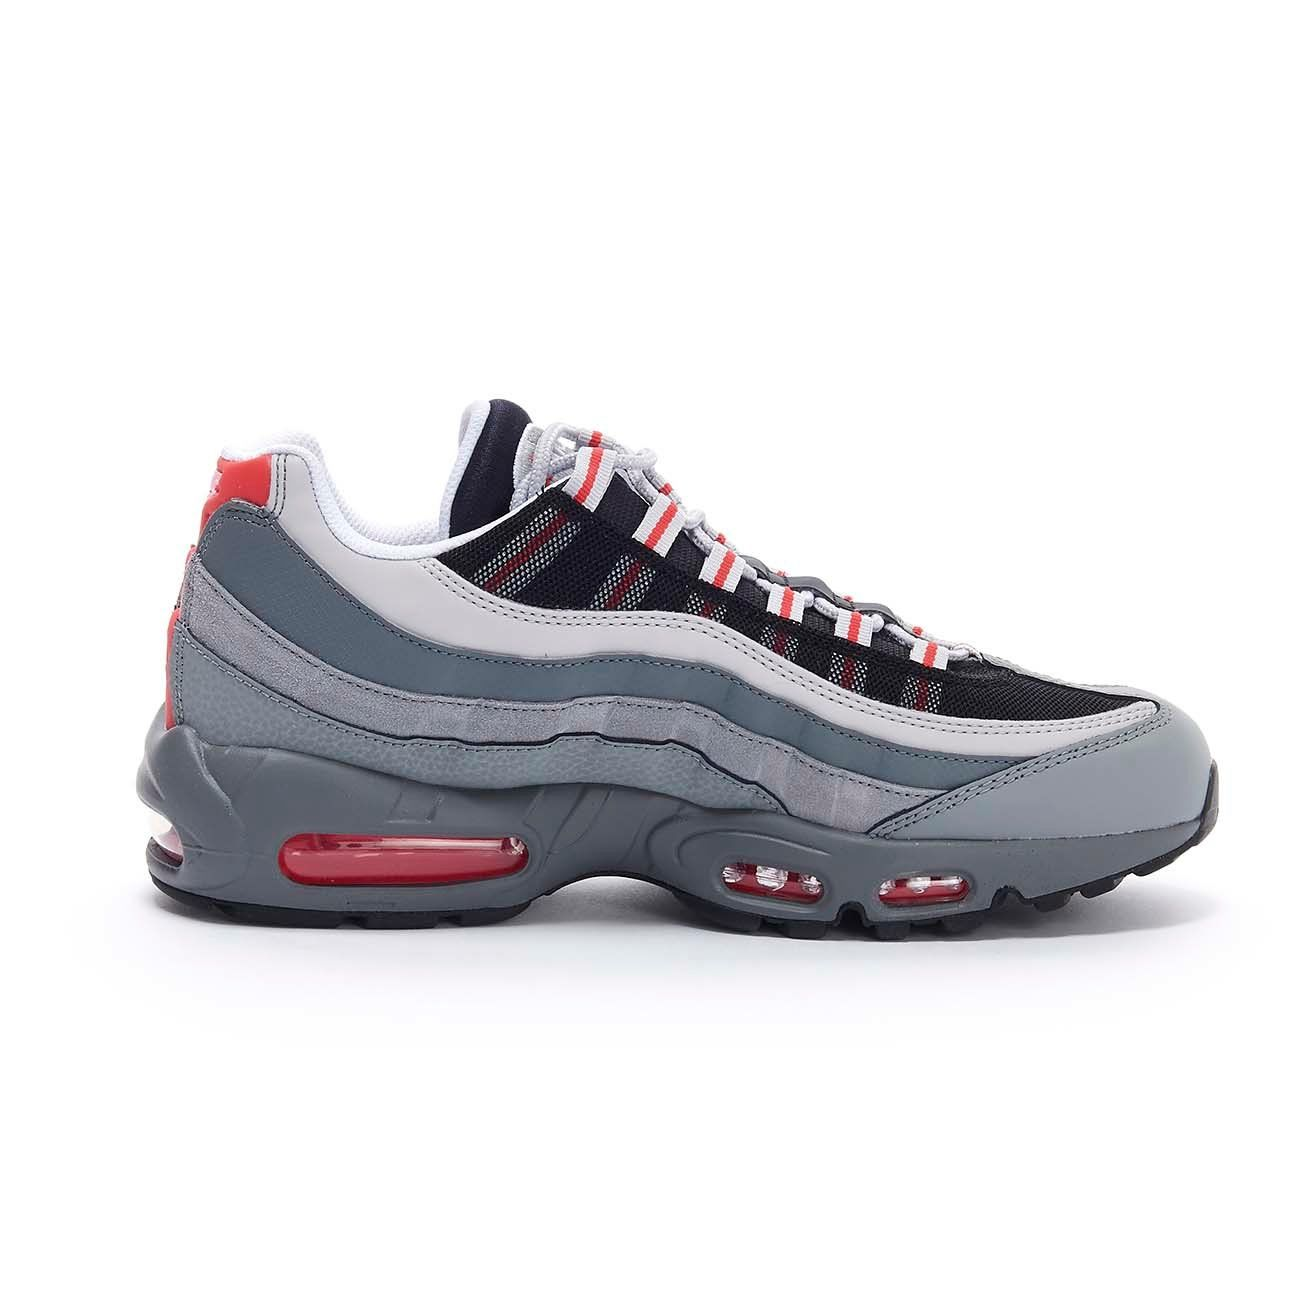 SNEAKER AIR MAX 95 ESSENTIAL Man Track red White Particle grey 2105826825863